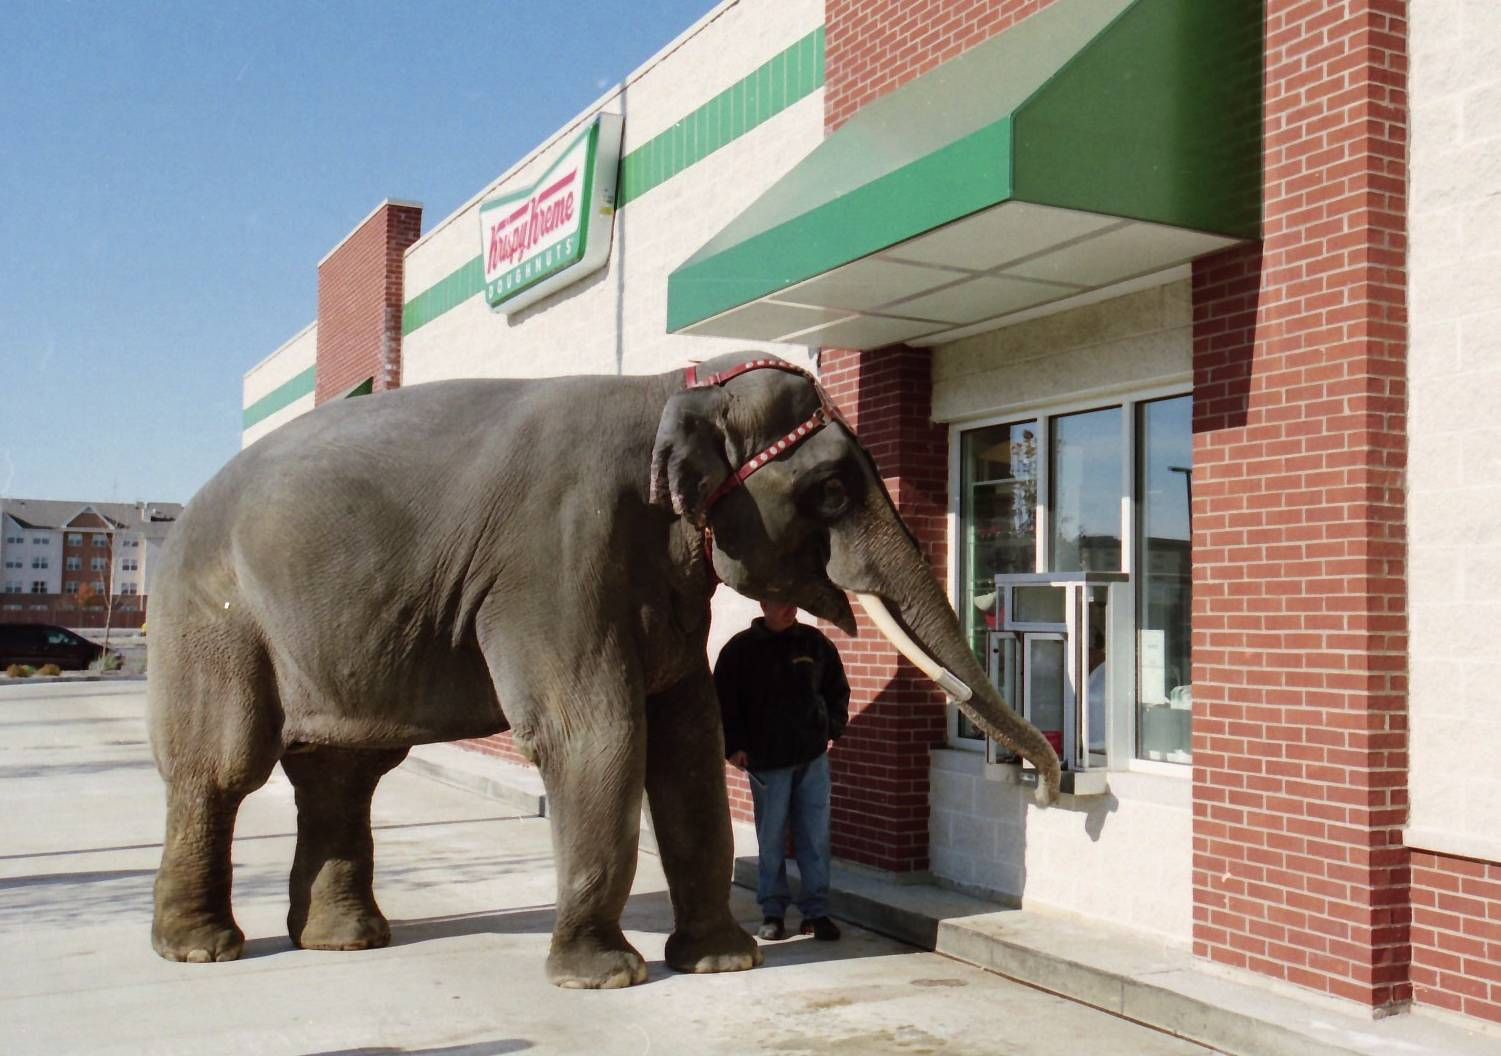 Bo, a Ringling Bros. Barnum and Bailey Circus elephant, inquires about a takeout order from the Rosemont Krispy Kreme on Nov. 10, 2001.